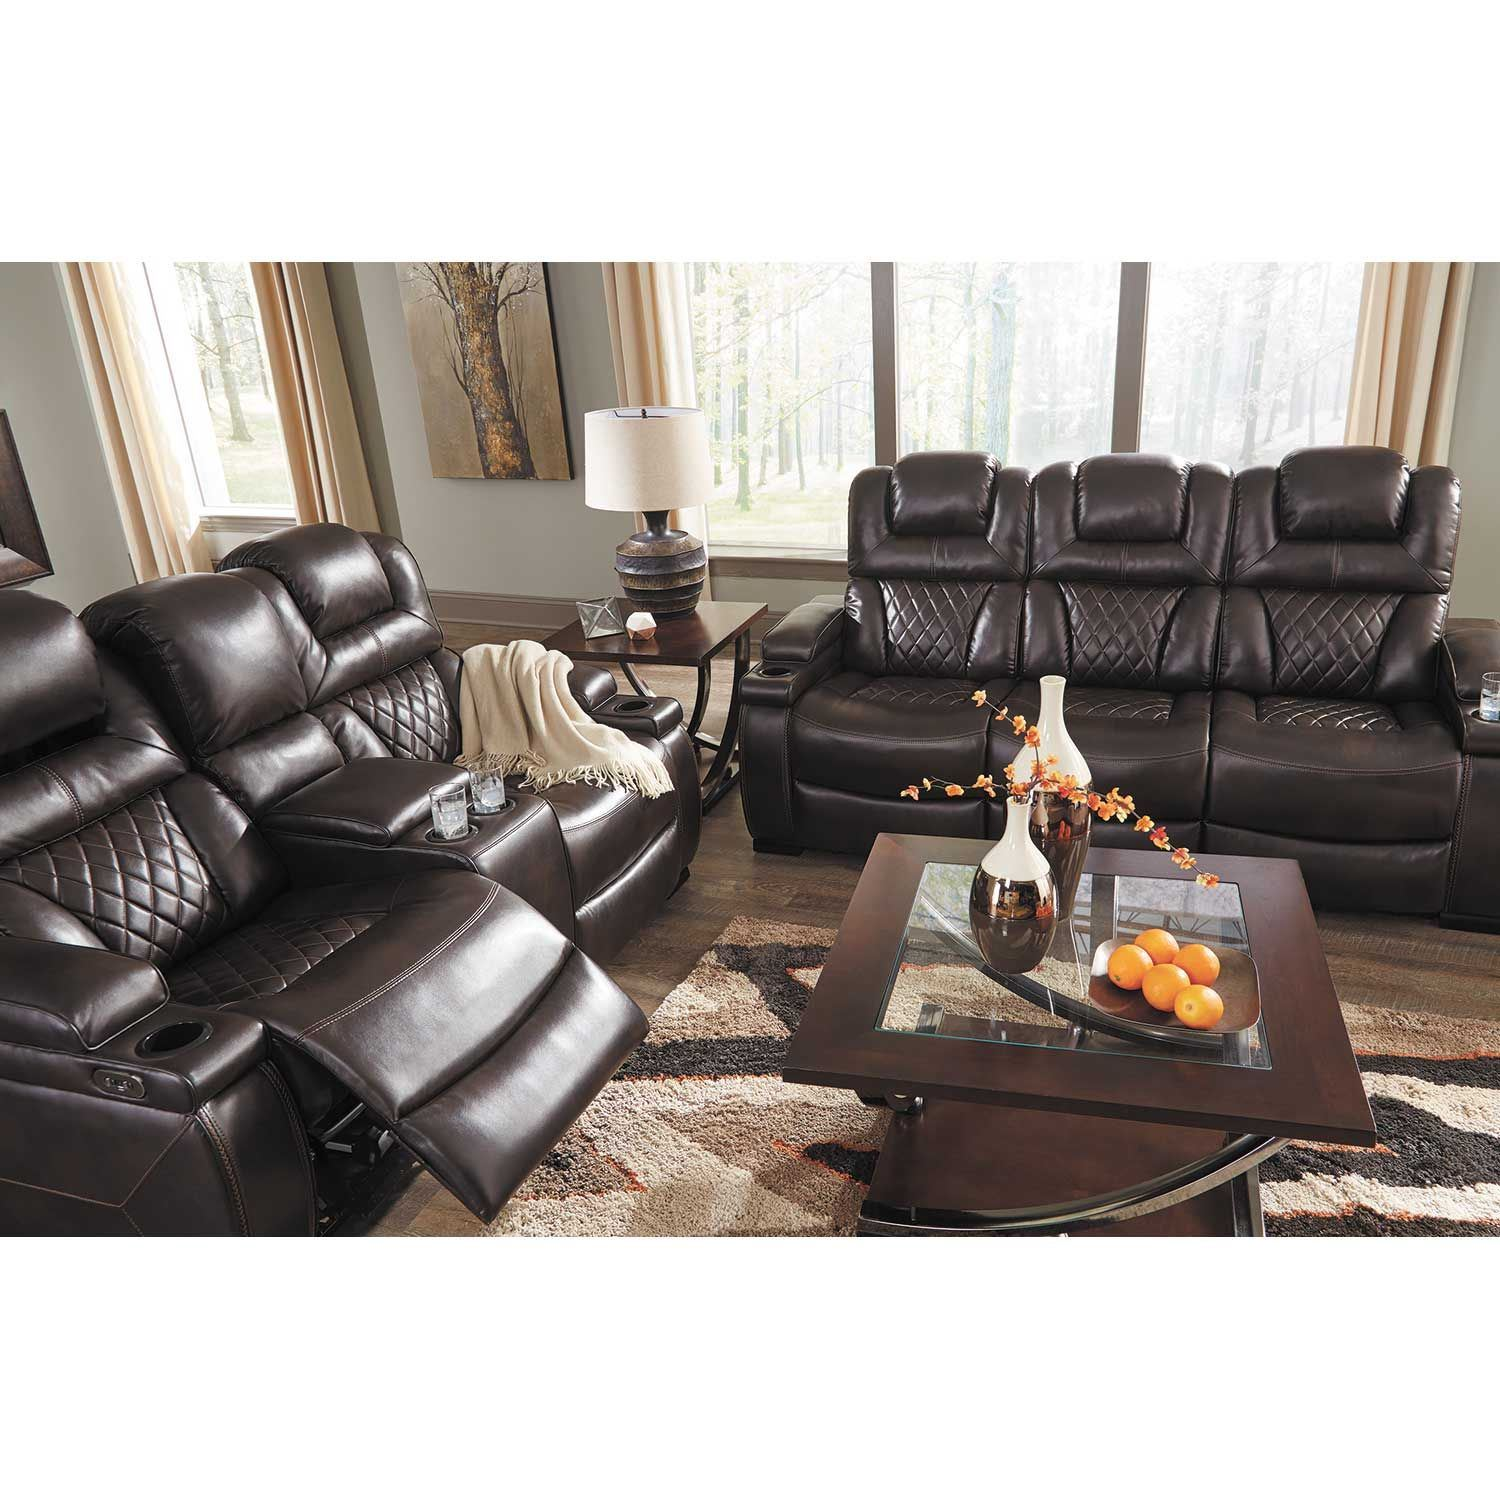 American Signature Furniture Commercial Gagging: Warnerton Power Reclining Sofa With Drop Table